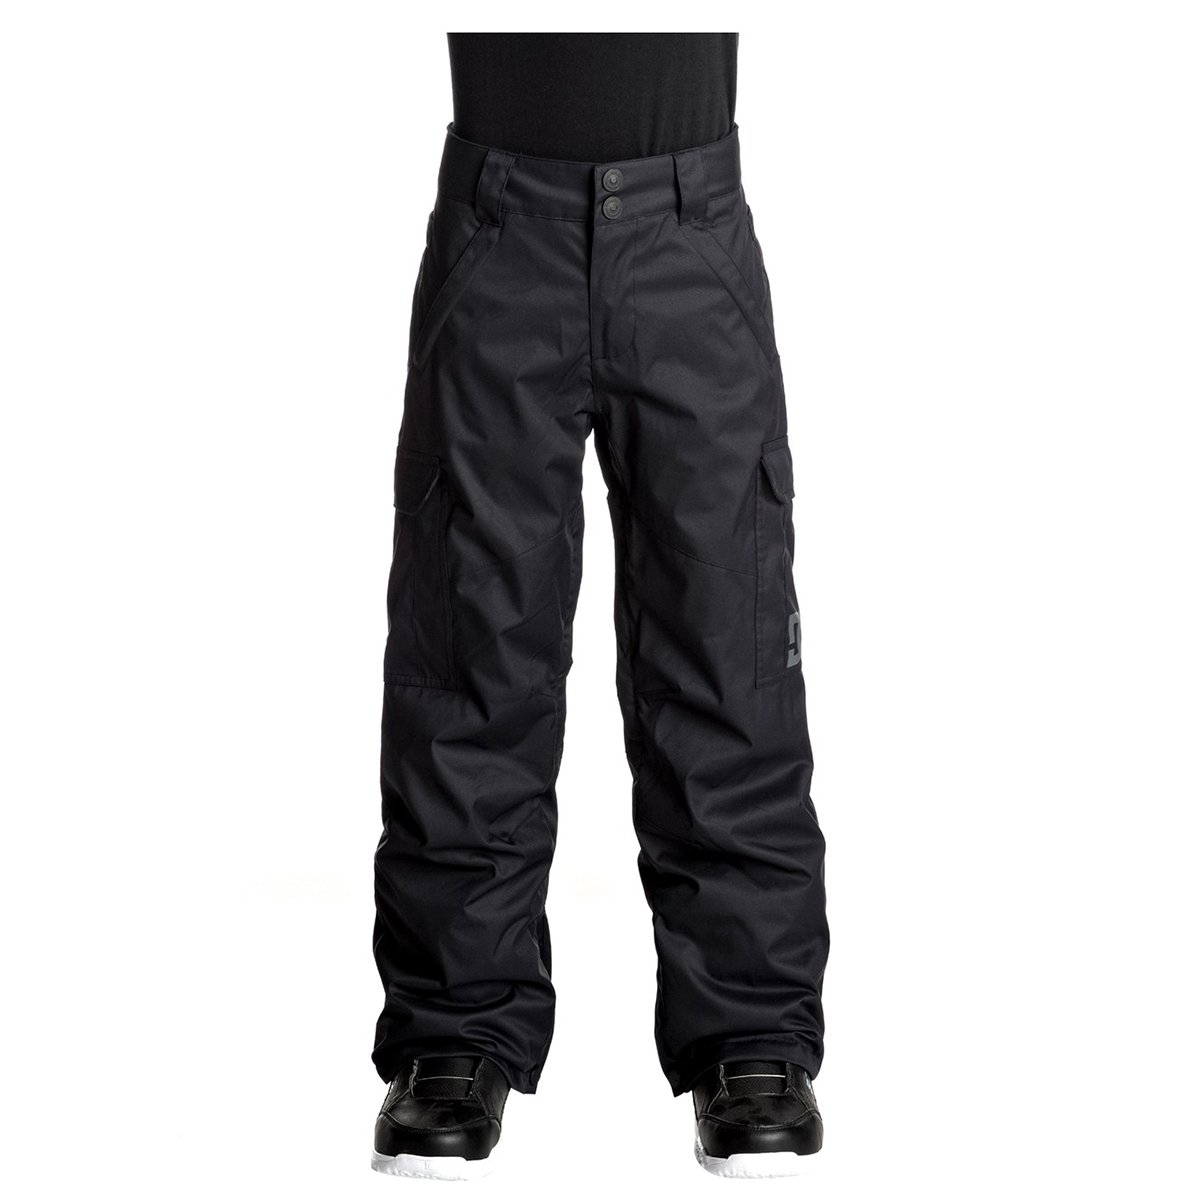 DC Boy's Banshee Snow Pants, Black, 2XL-16